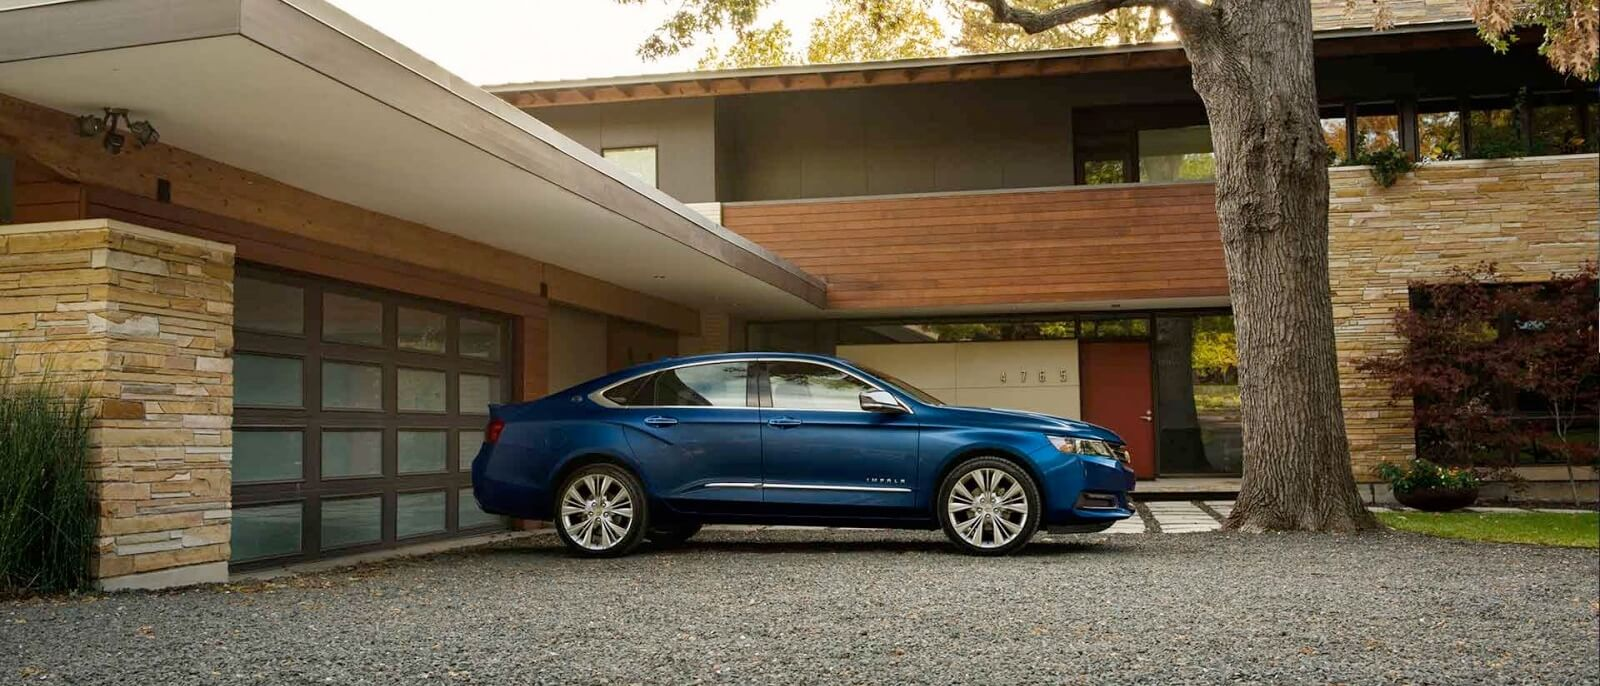 2017 Chevrolet Impala blue exterior side view